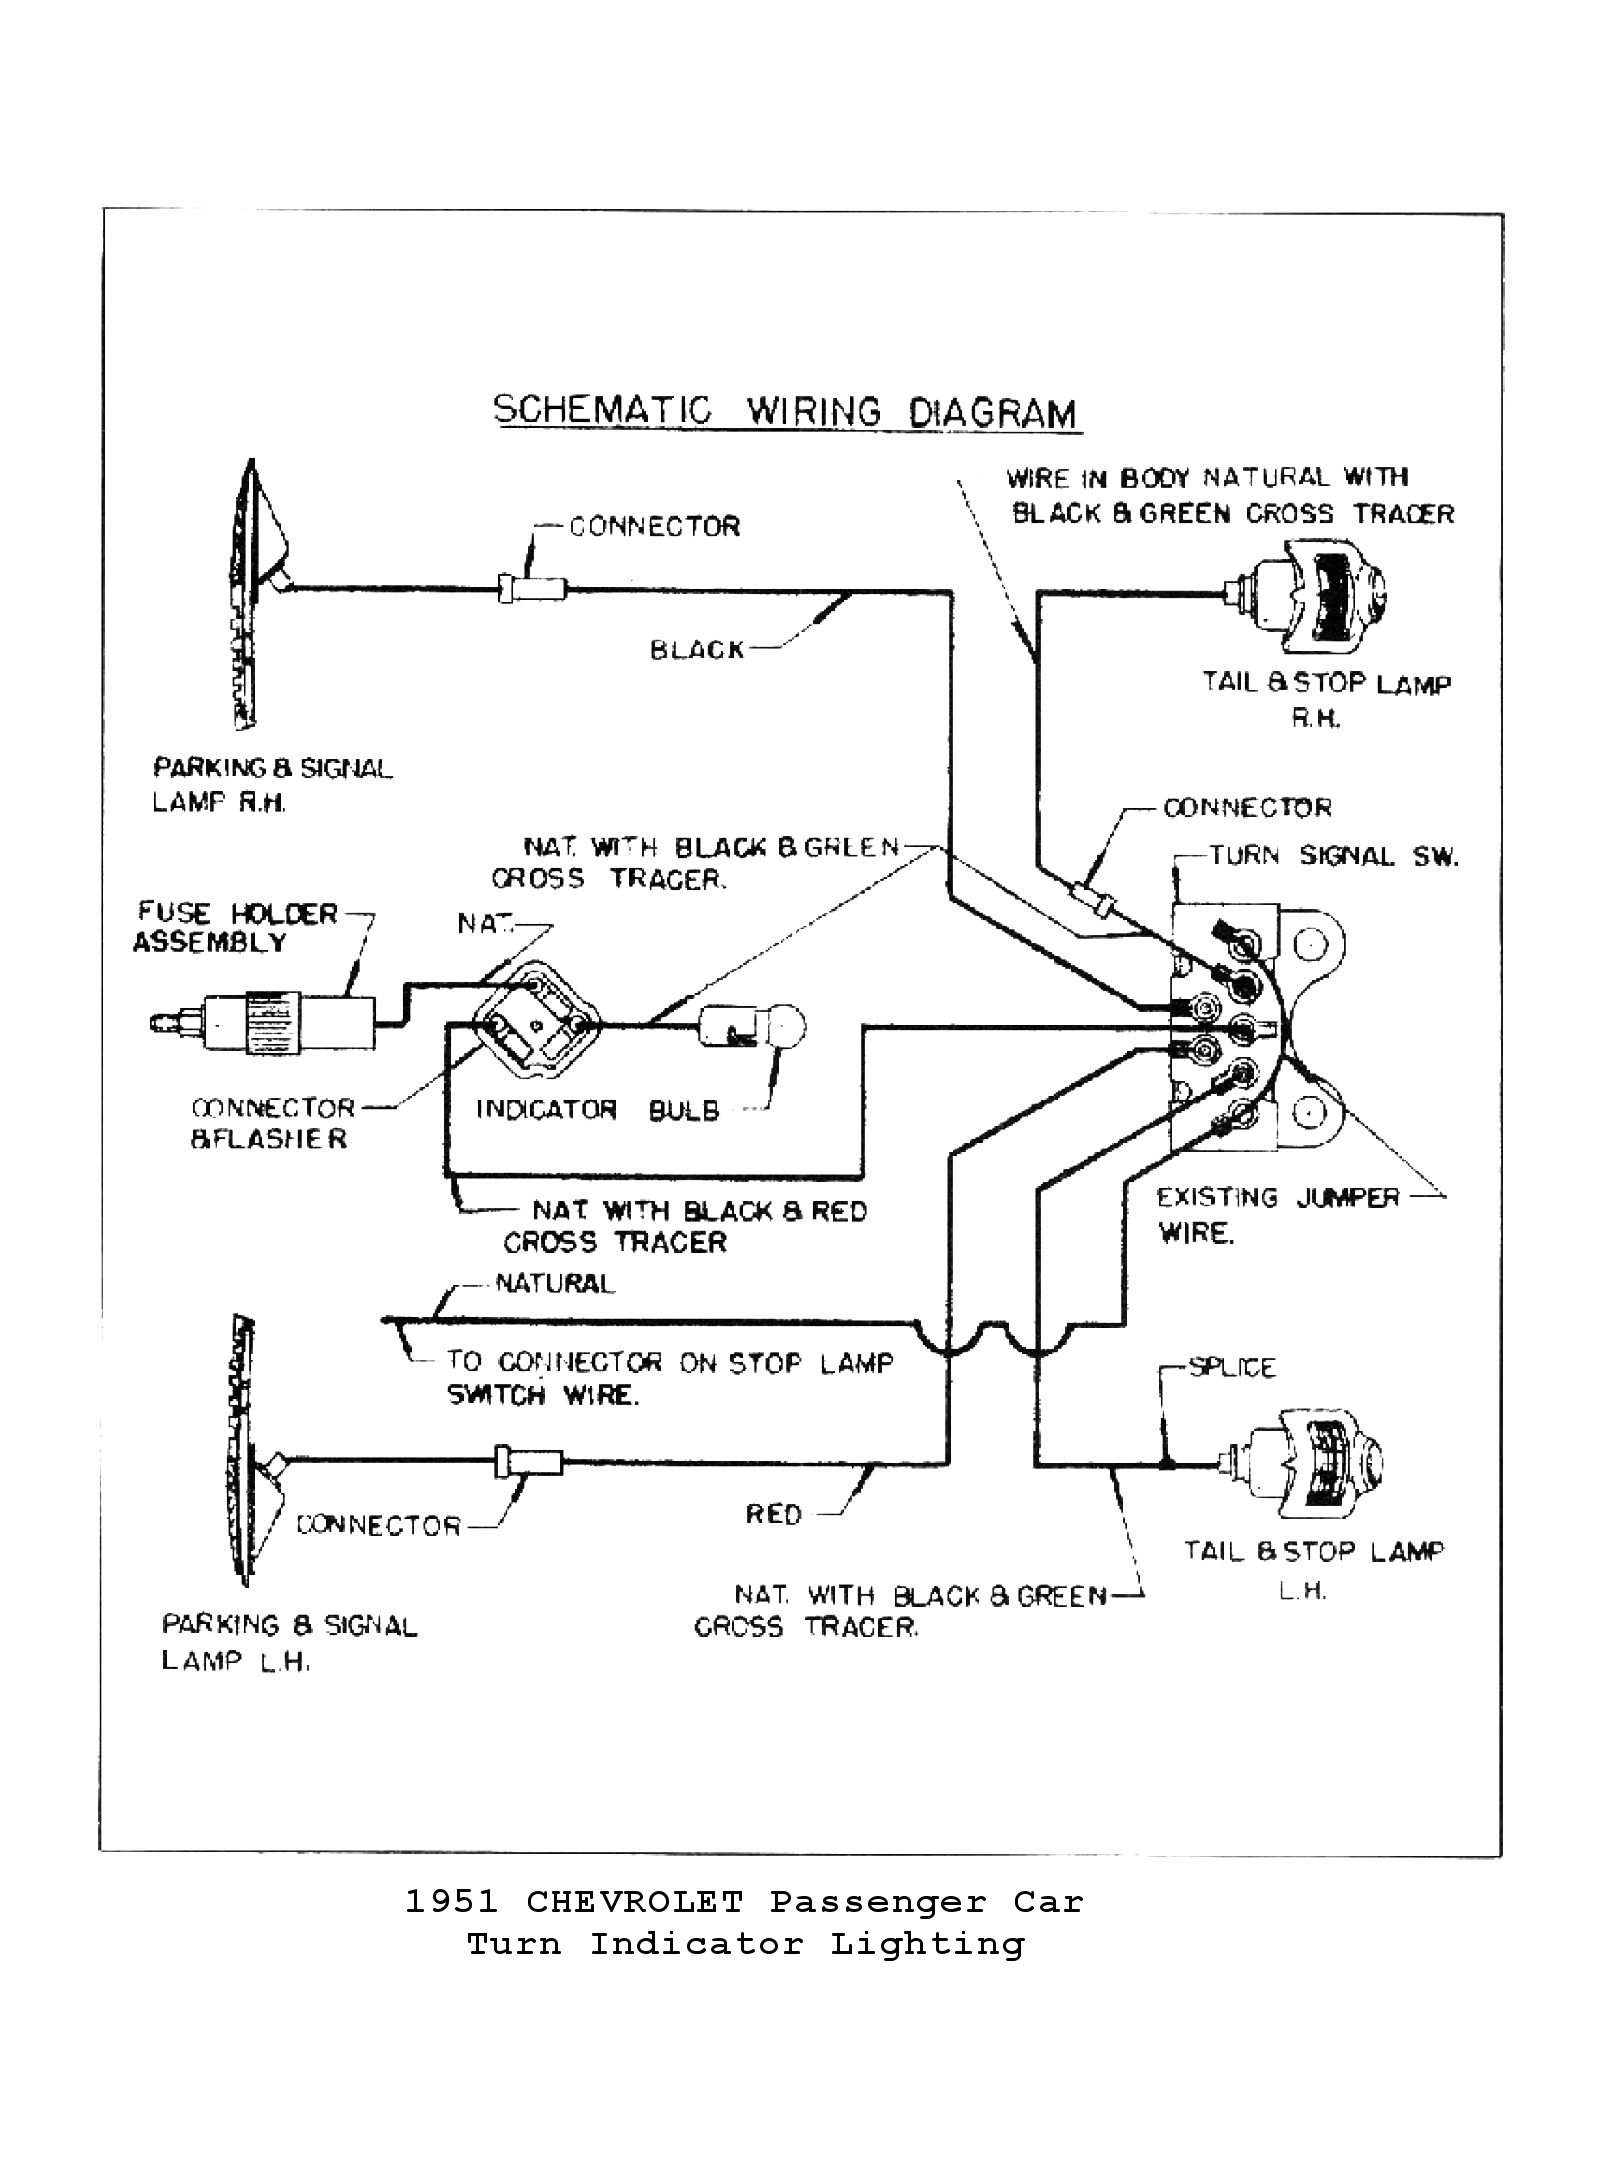 Chevy Wiring diagrams on air brake schematic, spray system schematic, truck suspension schematic, nfpa fire pump piping schematic, truck maintenance schematic, truck tool box schematic, trailer air lines schematic, truck engine schematic, truck axle schematic,